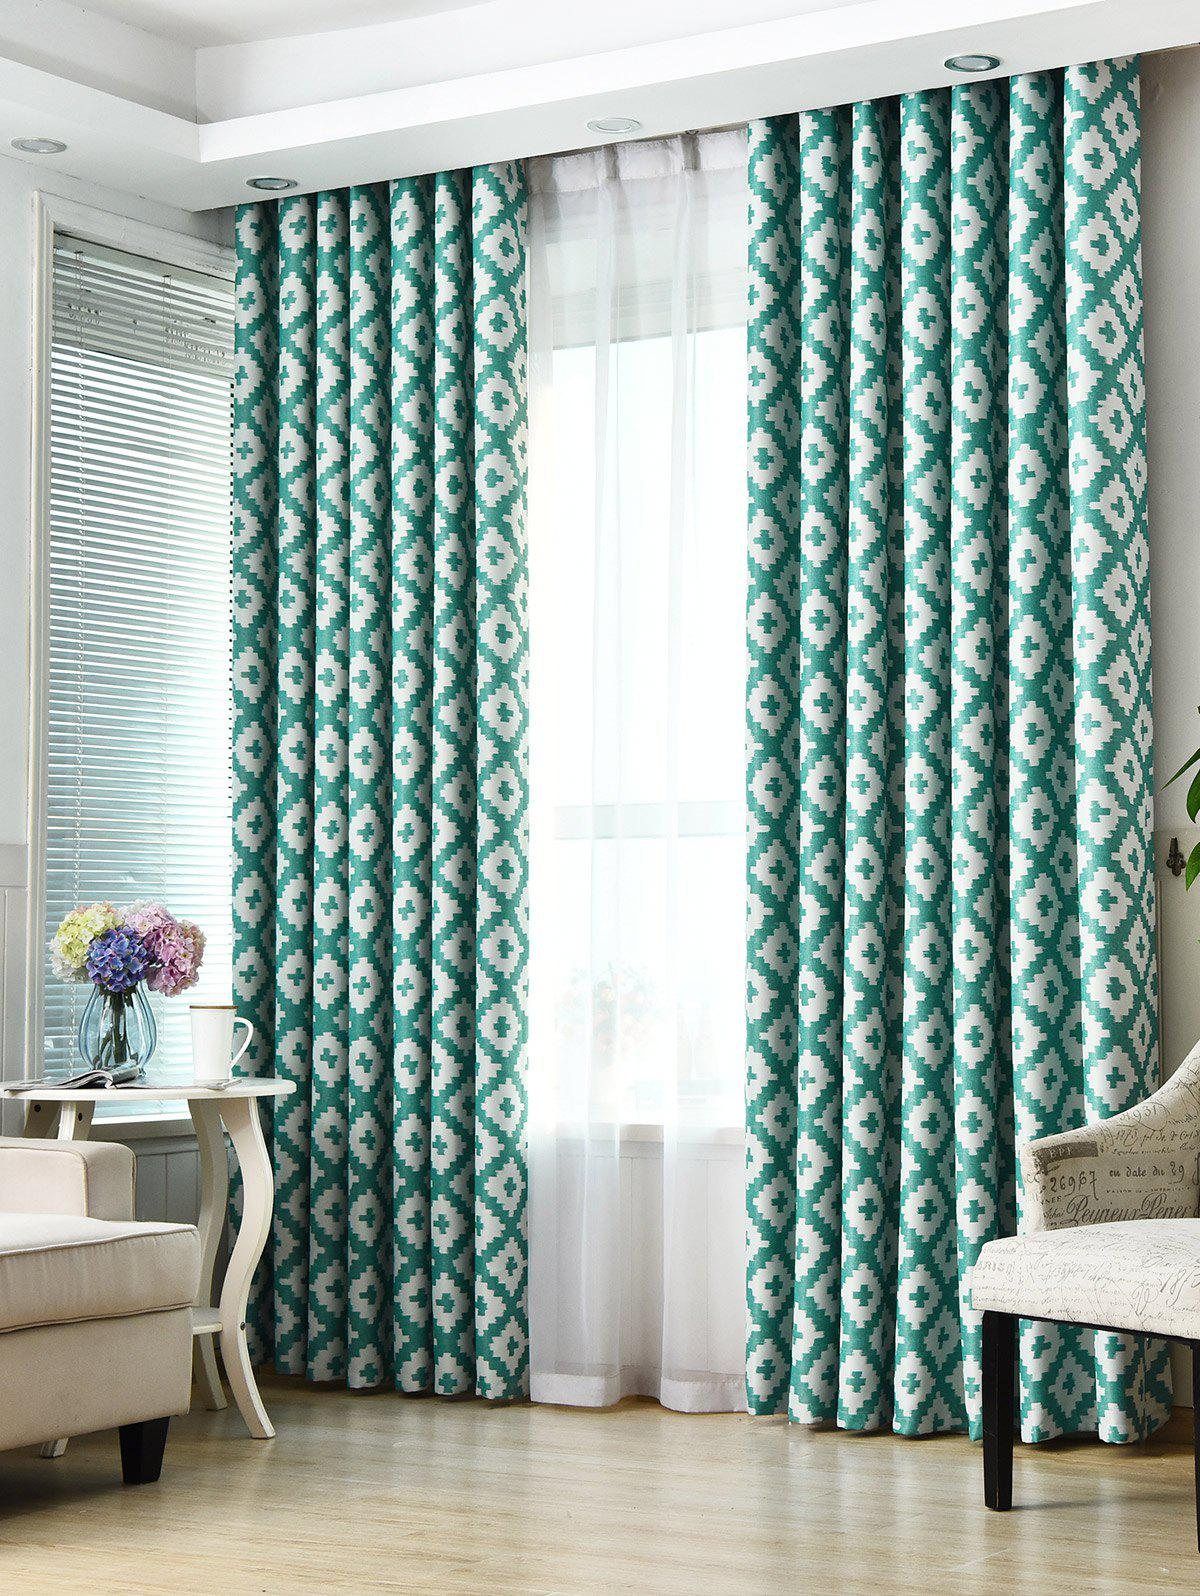 Shading Fenêtre Blackout Curtain Pour Living Room - Turquoise W53 INCH*L83 INCH